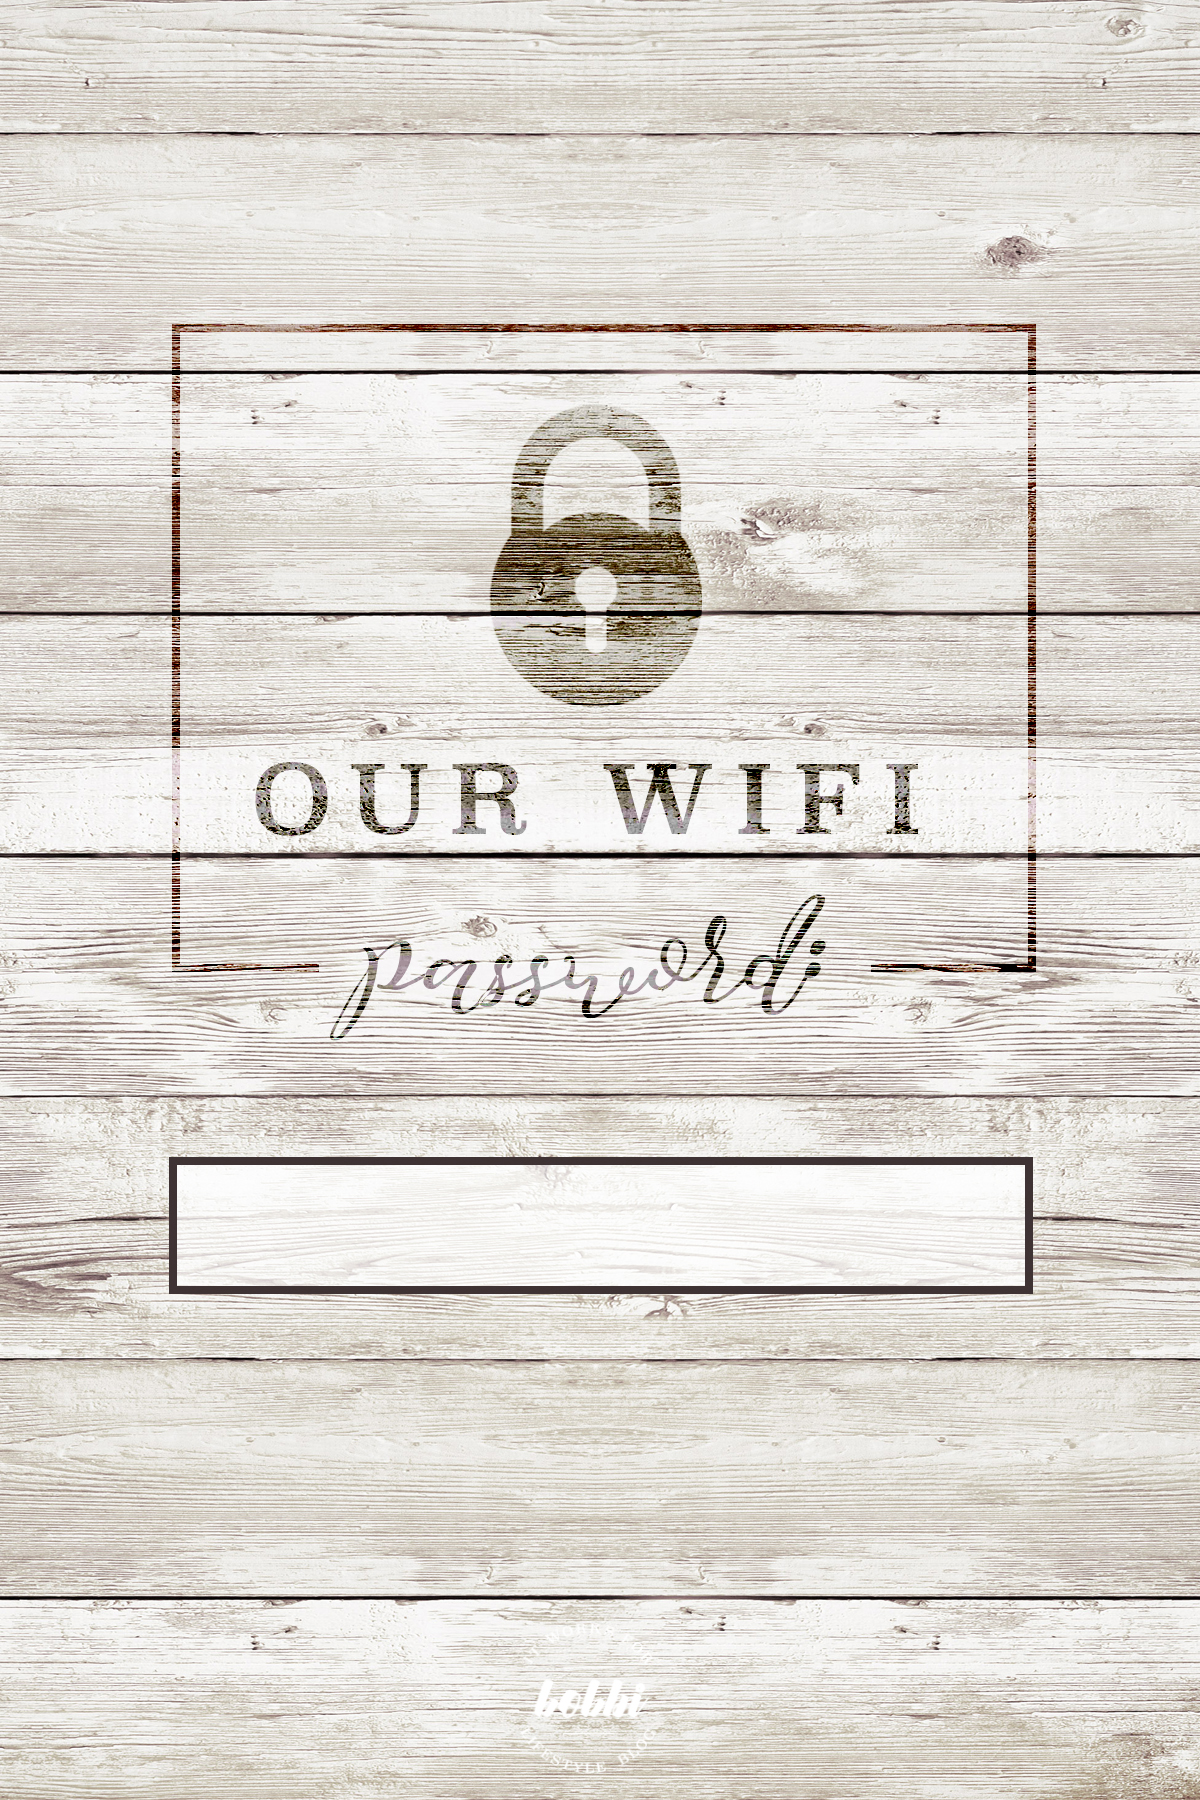 graphic relating to Wifi Password Printable Free referred to as Our Wifi Pword Is Cost-free Printable 4X6 It Functions For Bobbi!